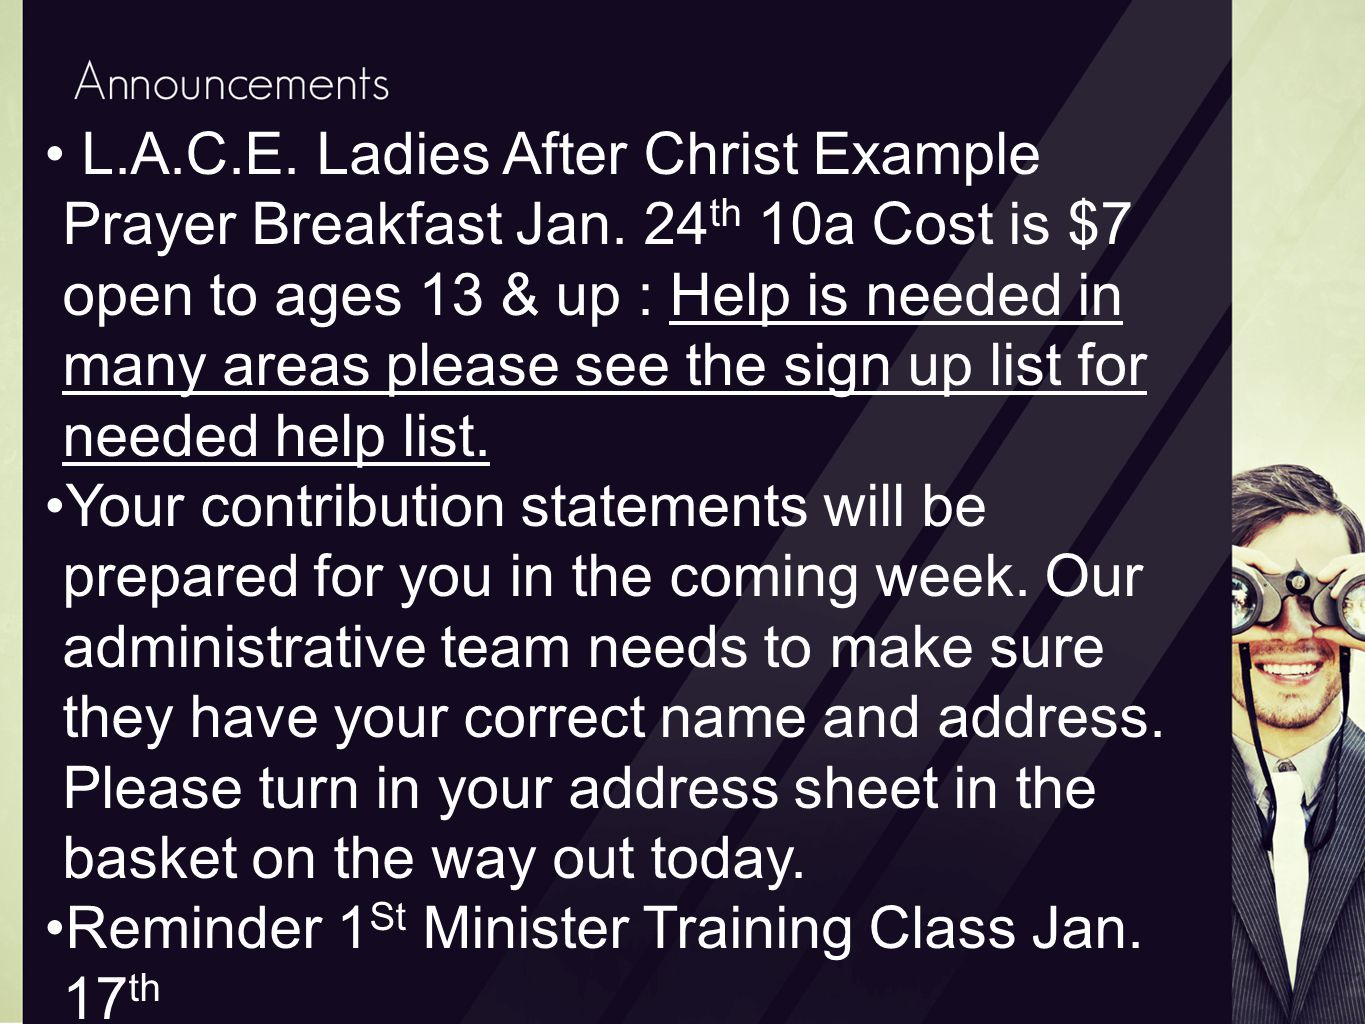 L.A.C.E. Ladies After Christ Example Prayer Breakfast Jan. 24 th 10a Cost is $7 open to ages 13 & up : Help is needed in many areas please see the sig